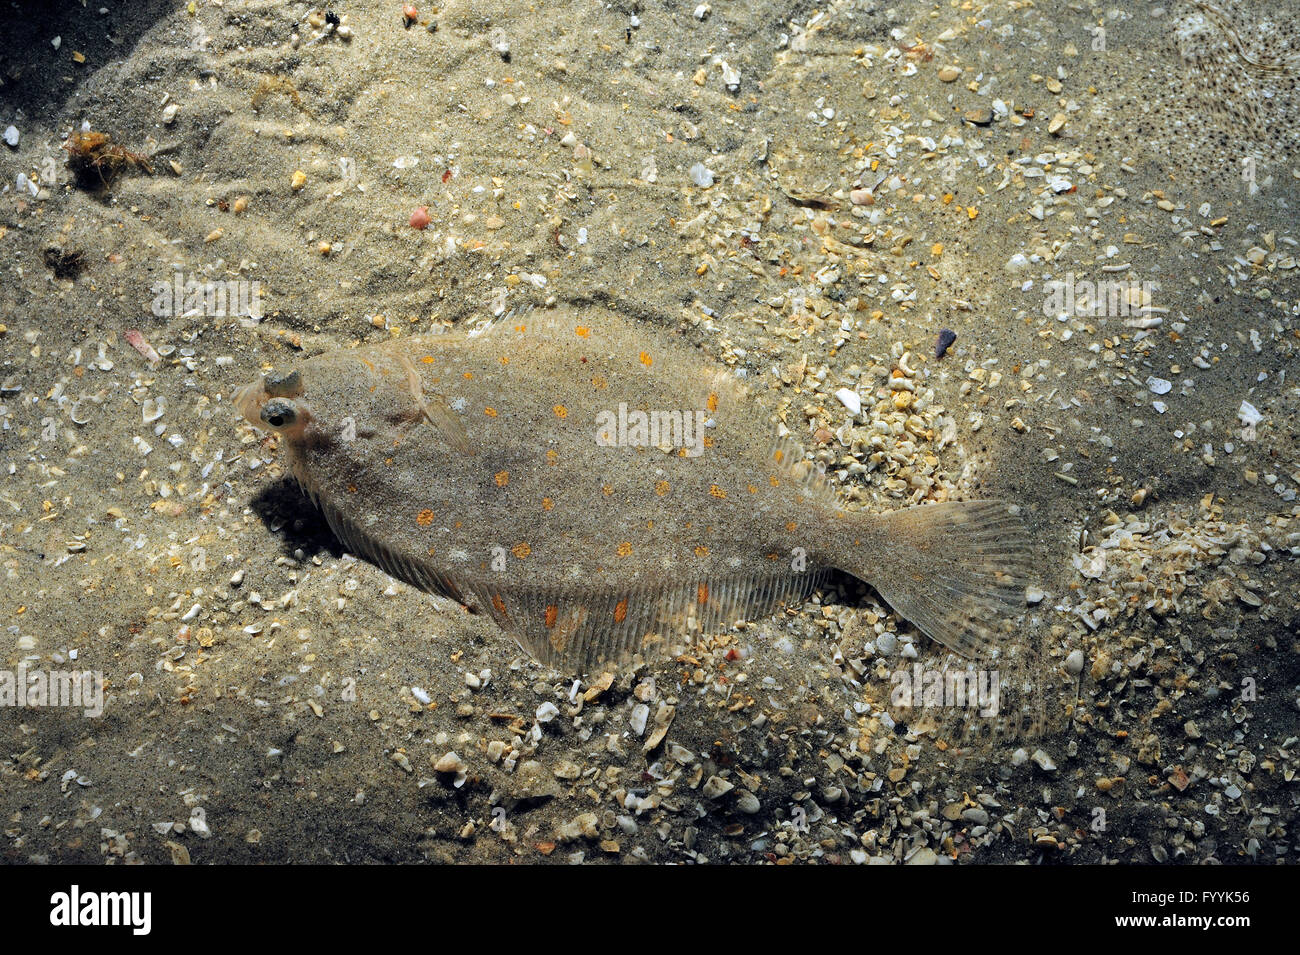 European plaice (Pleuronectes platessa) perfectly camouflaged by blending in with the sea floor - Stock Image